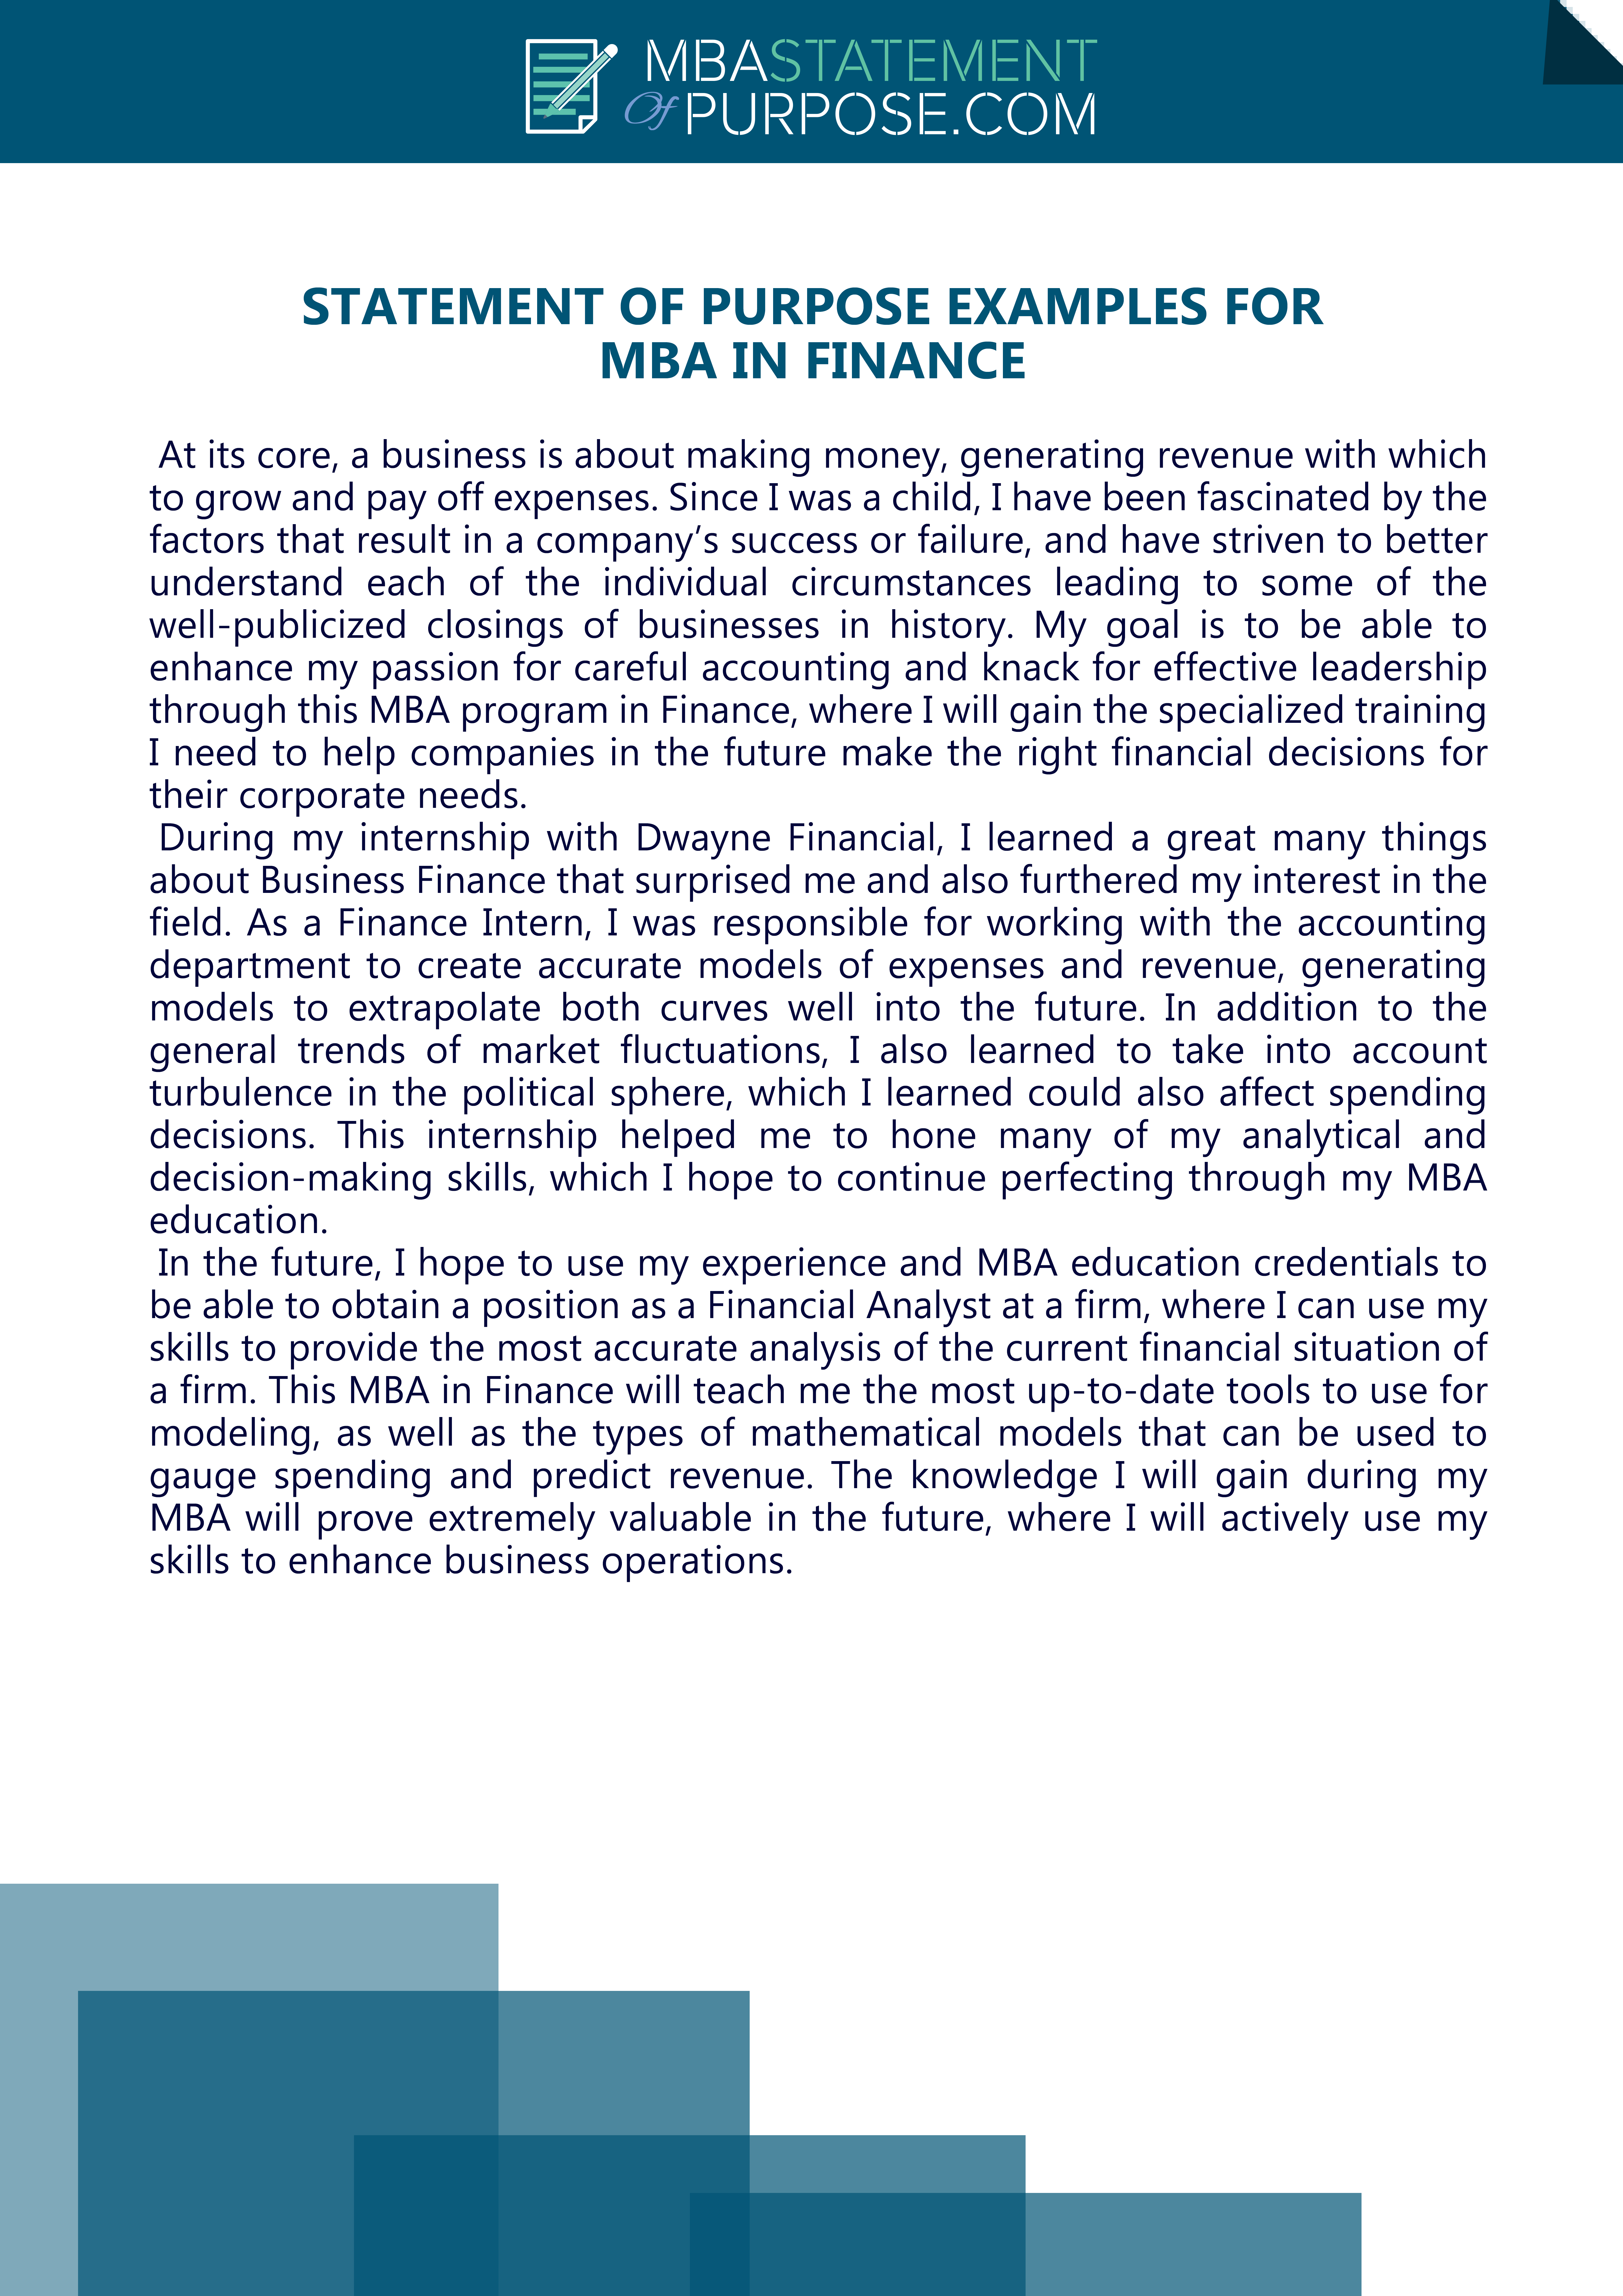 Click On This Link To Get Statement Of Purpose Examples For Mba In Finance Https Www Mbastatementofpu Professional Resume Writers Resume Writing Services Mba